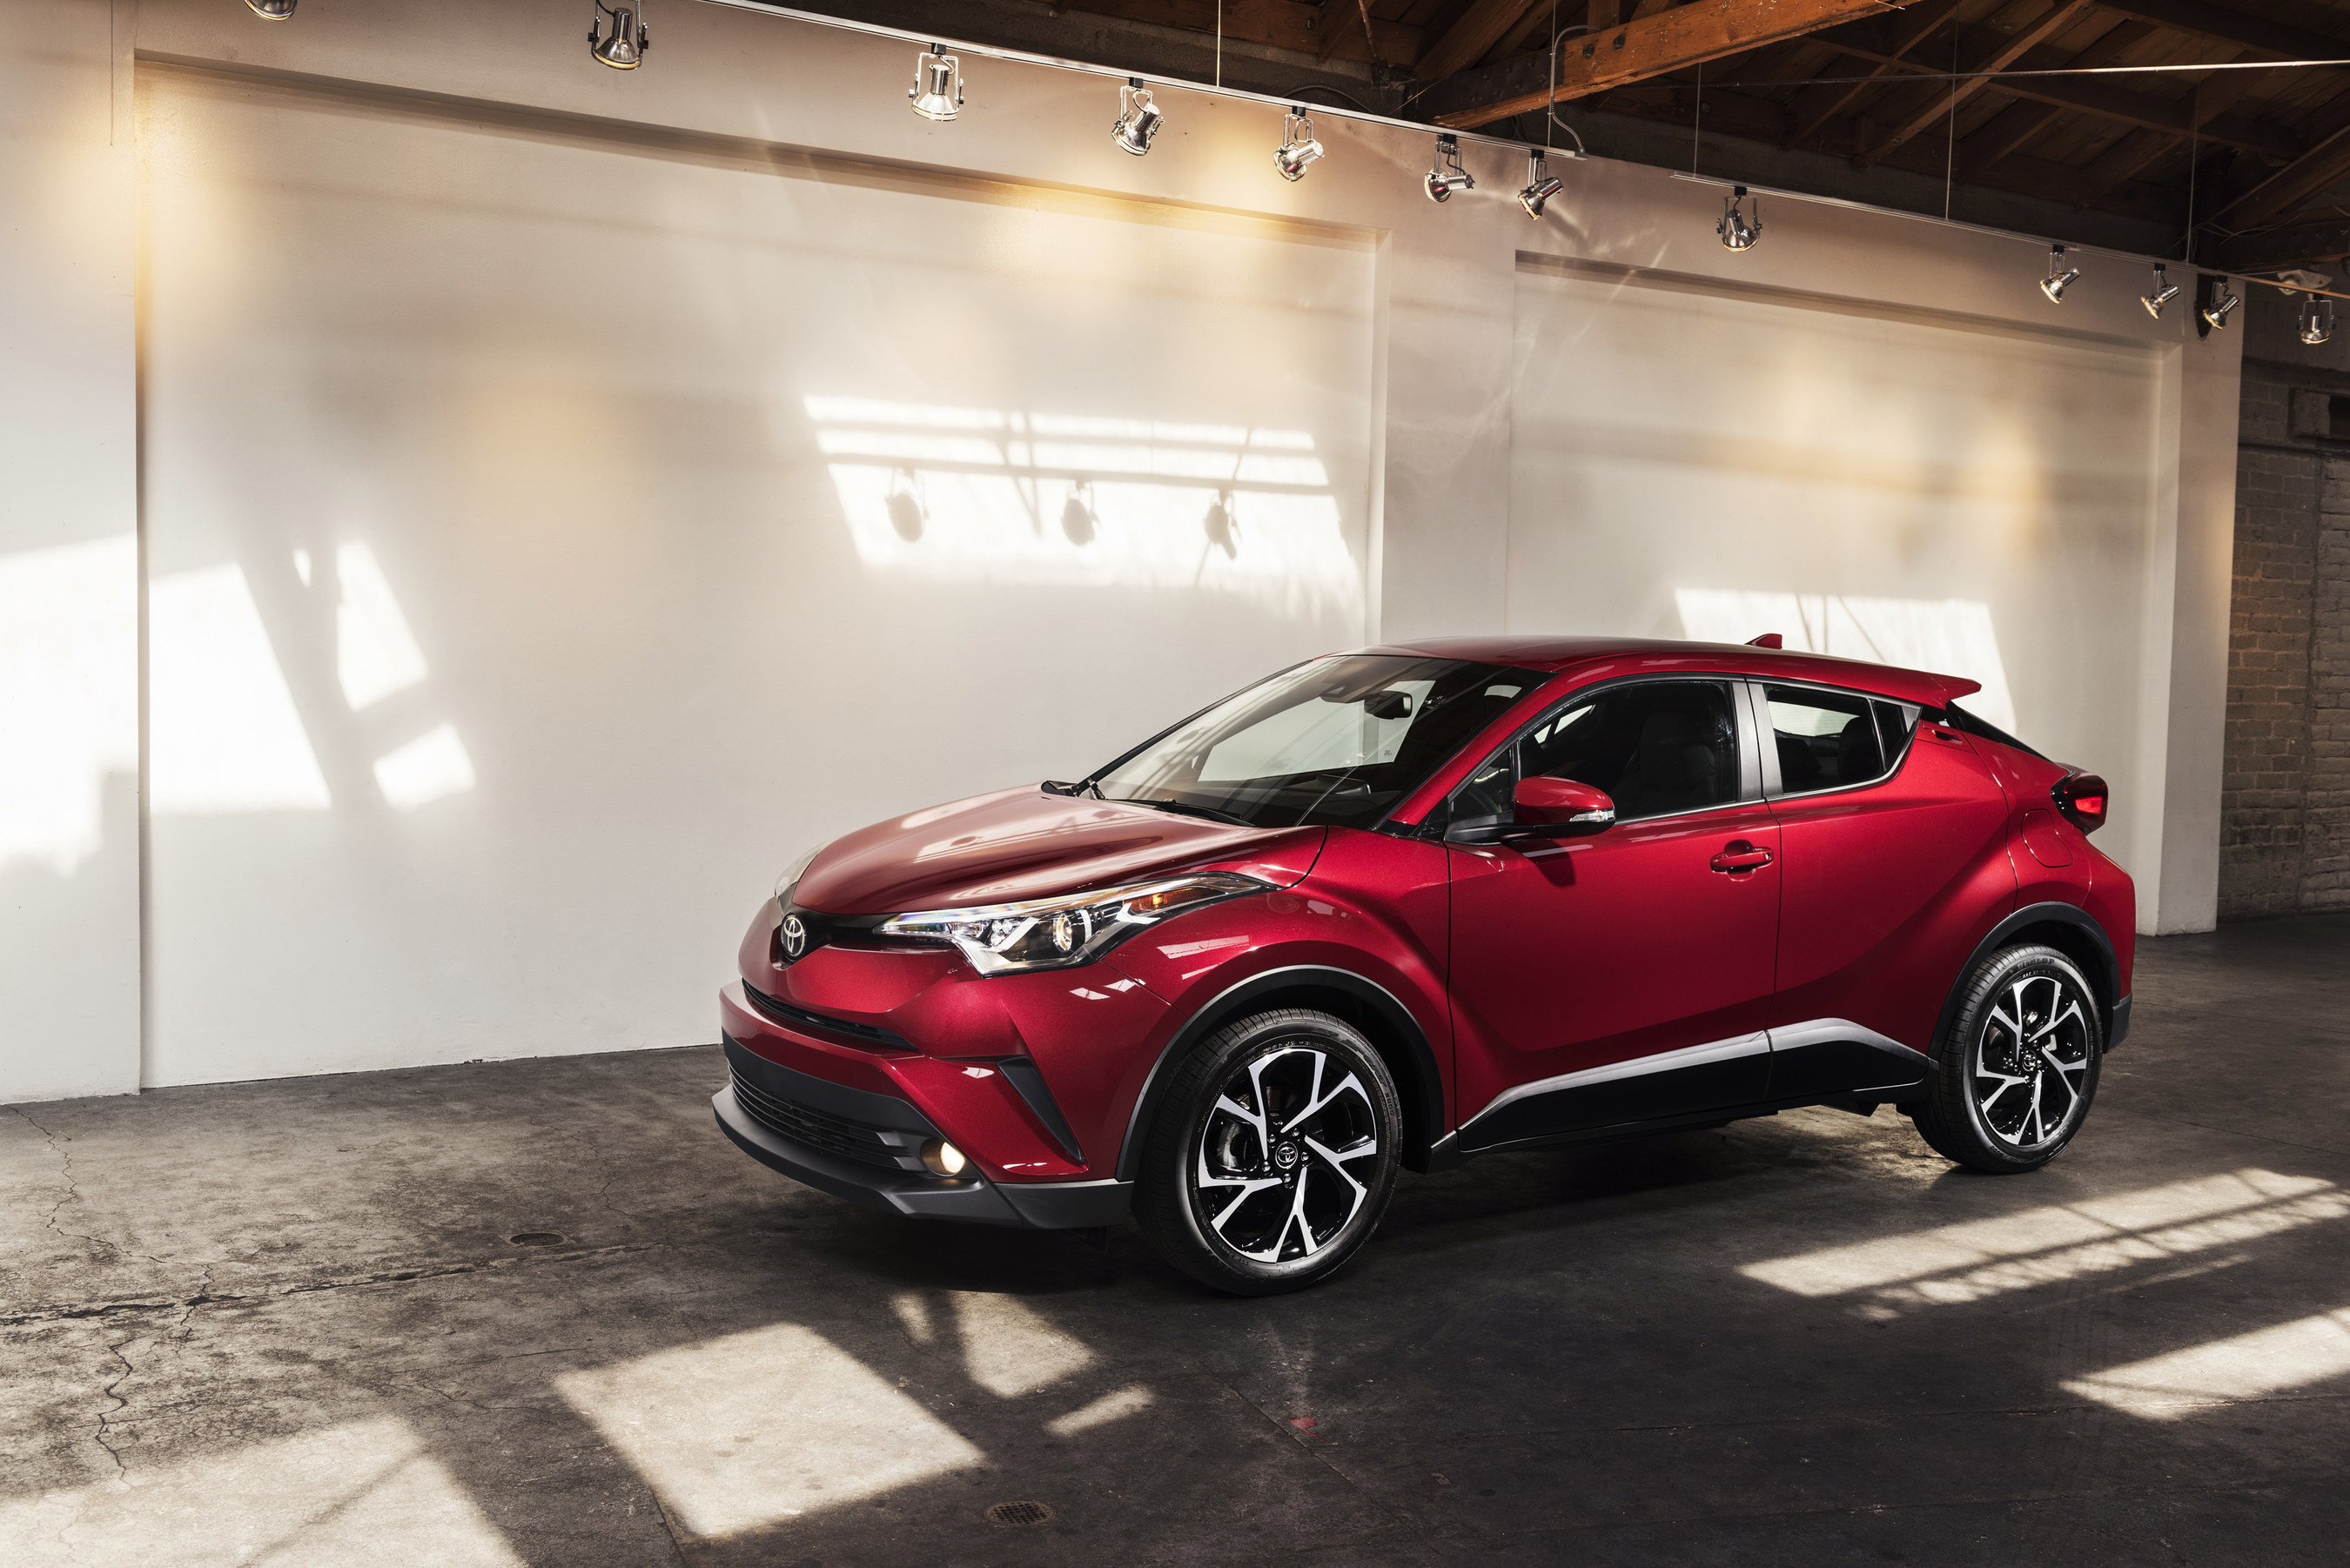 An exciting next chapter in Toyota's storied North American product history has been revealed under the lights of the Los Angeles Convention Center. Stylish, athletic, and tech-filled, the all-new 2018 Toyota C-HR - or, Coupe High-Rider - represents a leap forward in design, manufacturing, and engineering for Toyota.